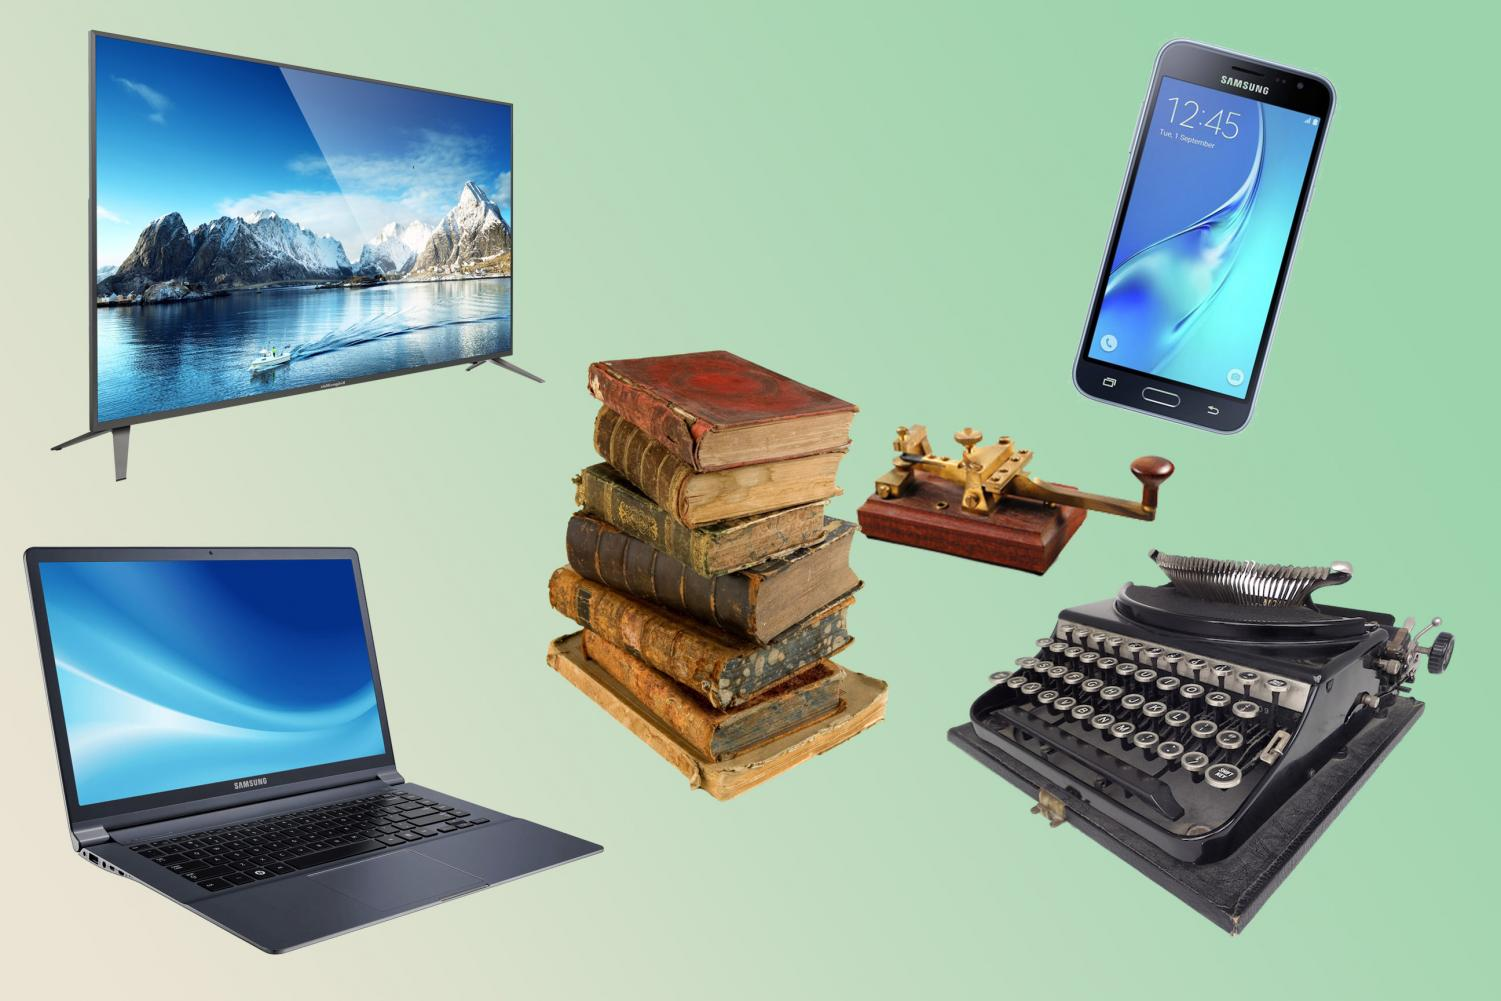 Although technology has become more advanced throughout history, new technology mimics older technology.